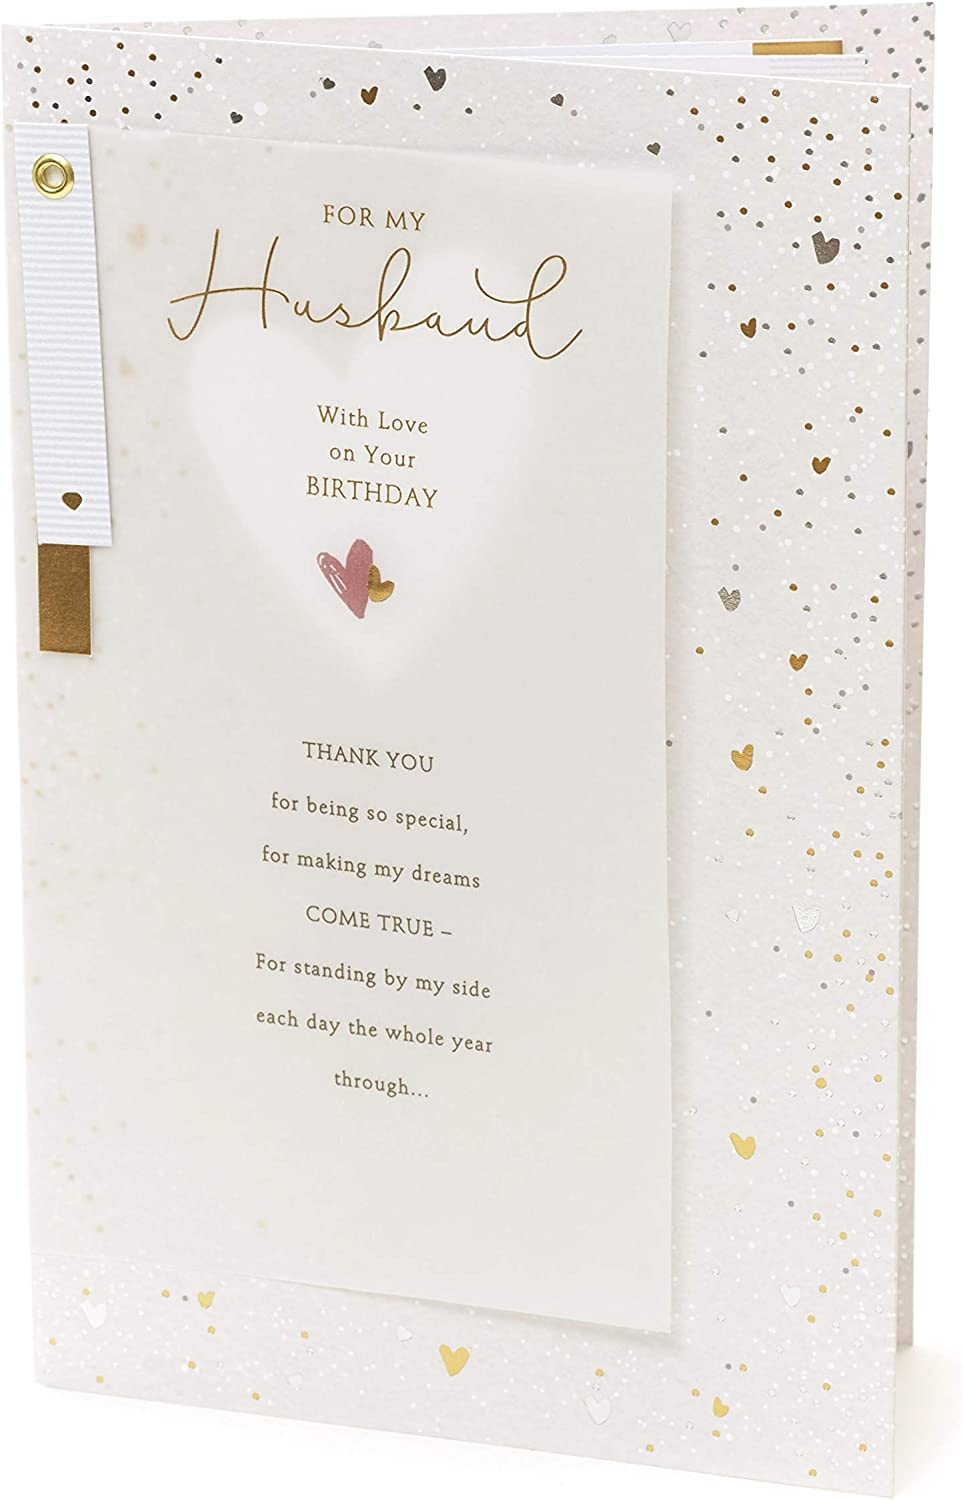 Very Nice Large Husband Birthday Card With Insert Lovely verse